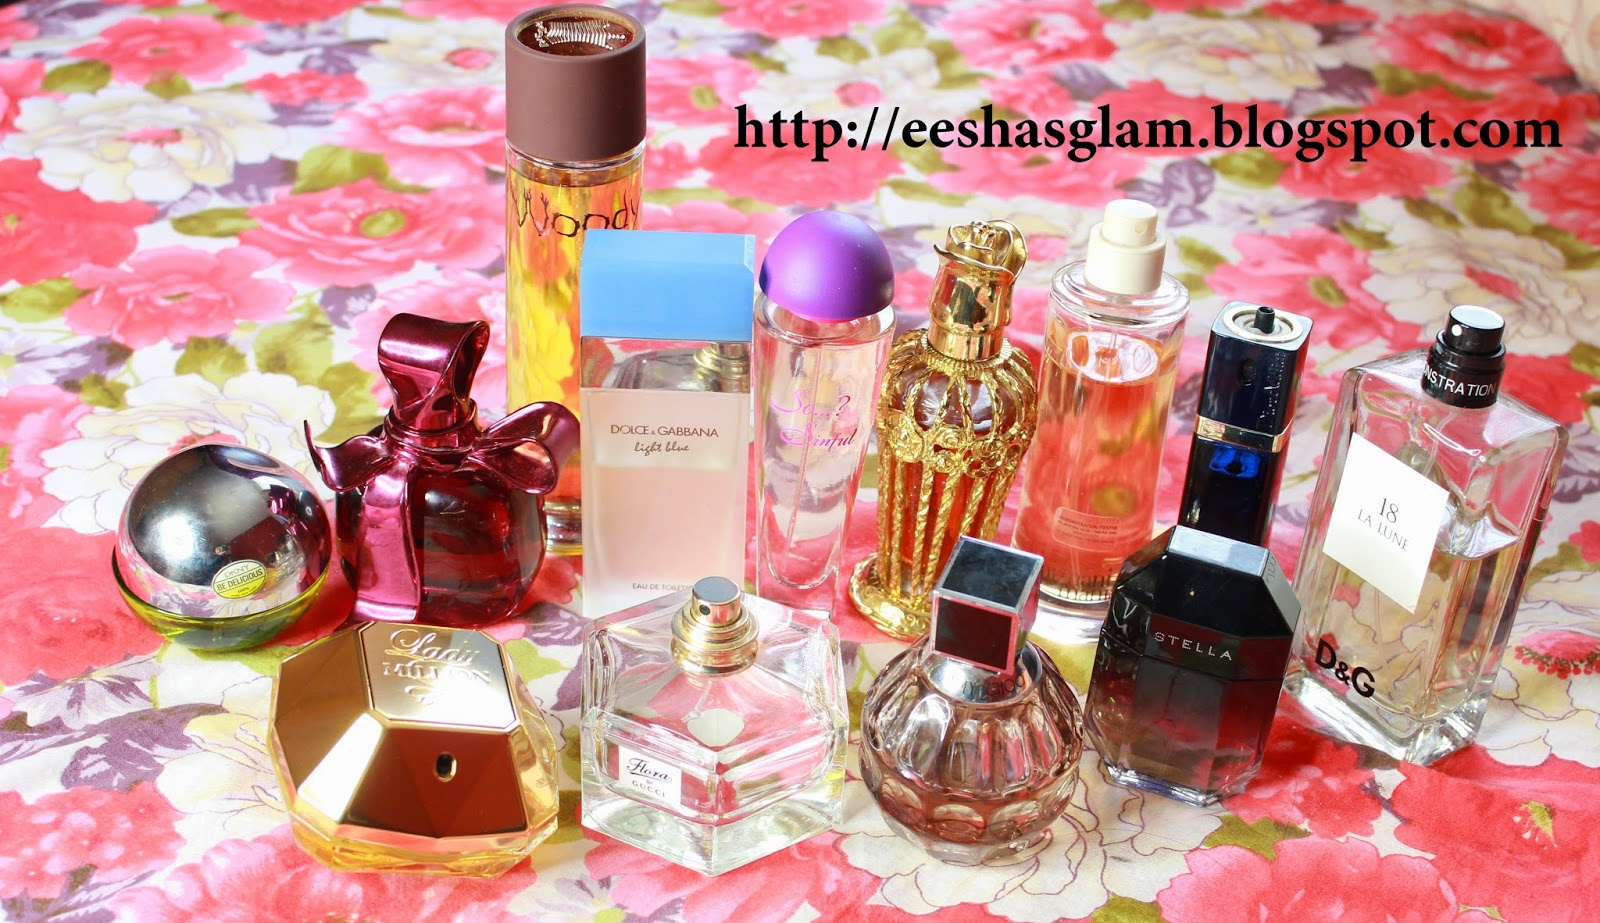 I Am A Perfume Holic Believe Woman Can Make Themselves Feel More Elegant And Classy Just By Having On Always The Hunt To Find